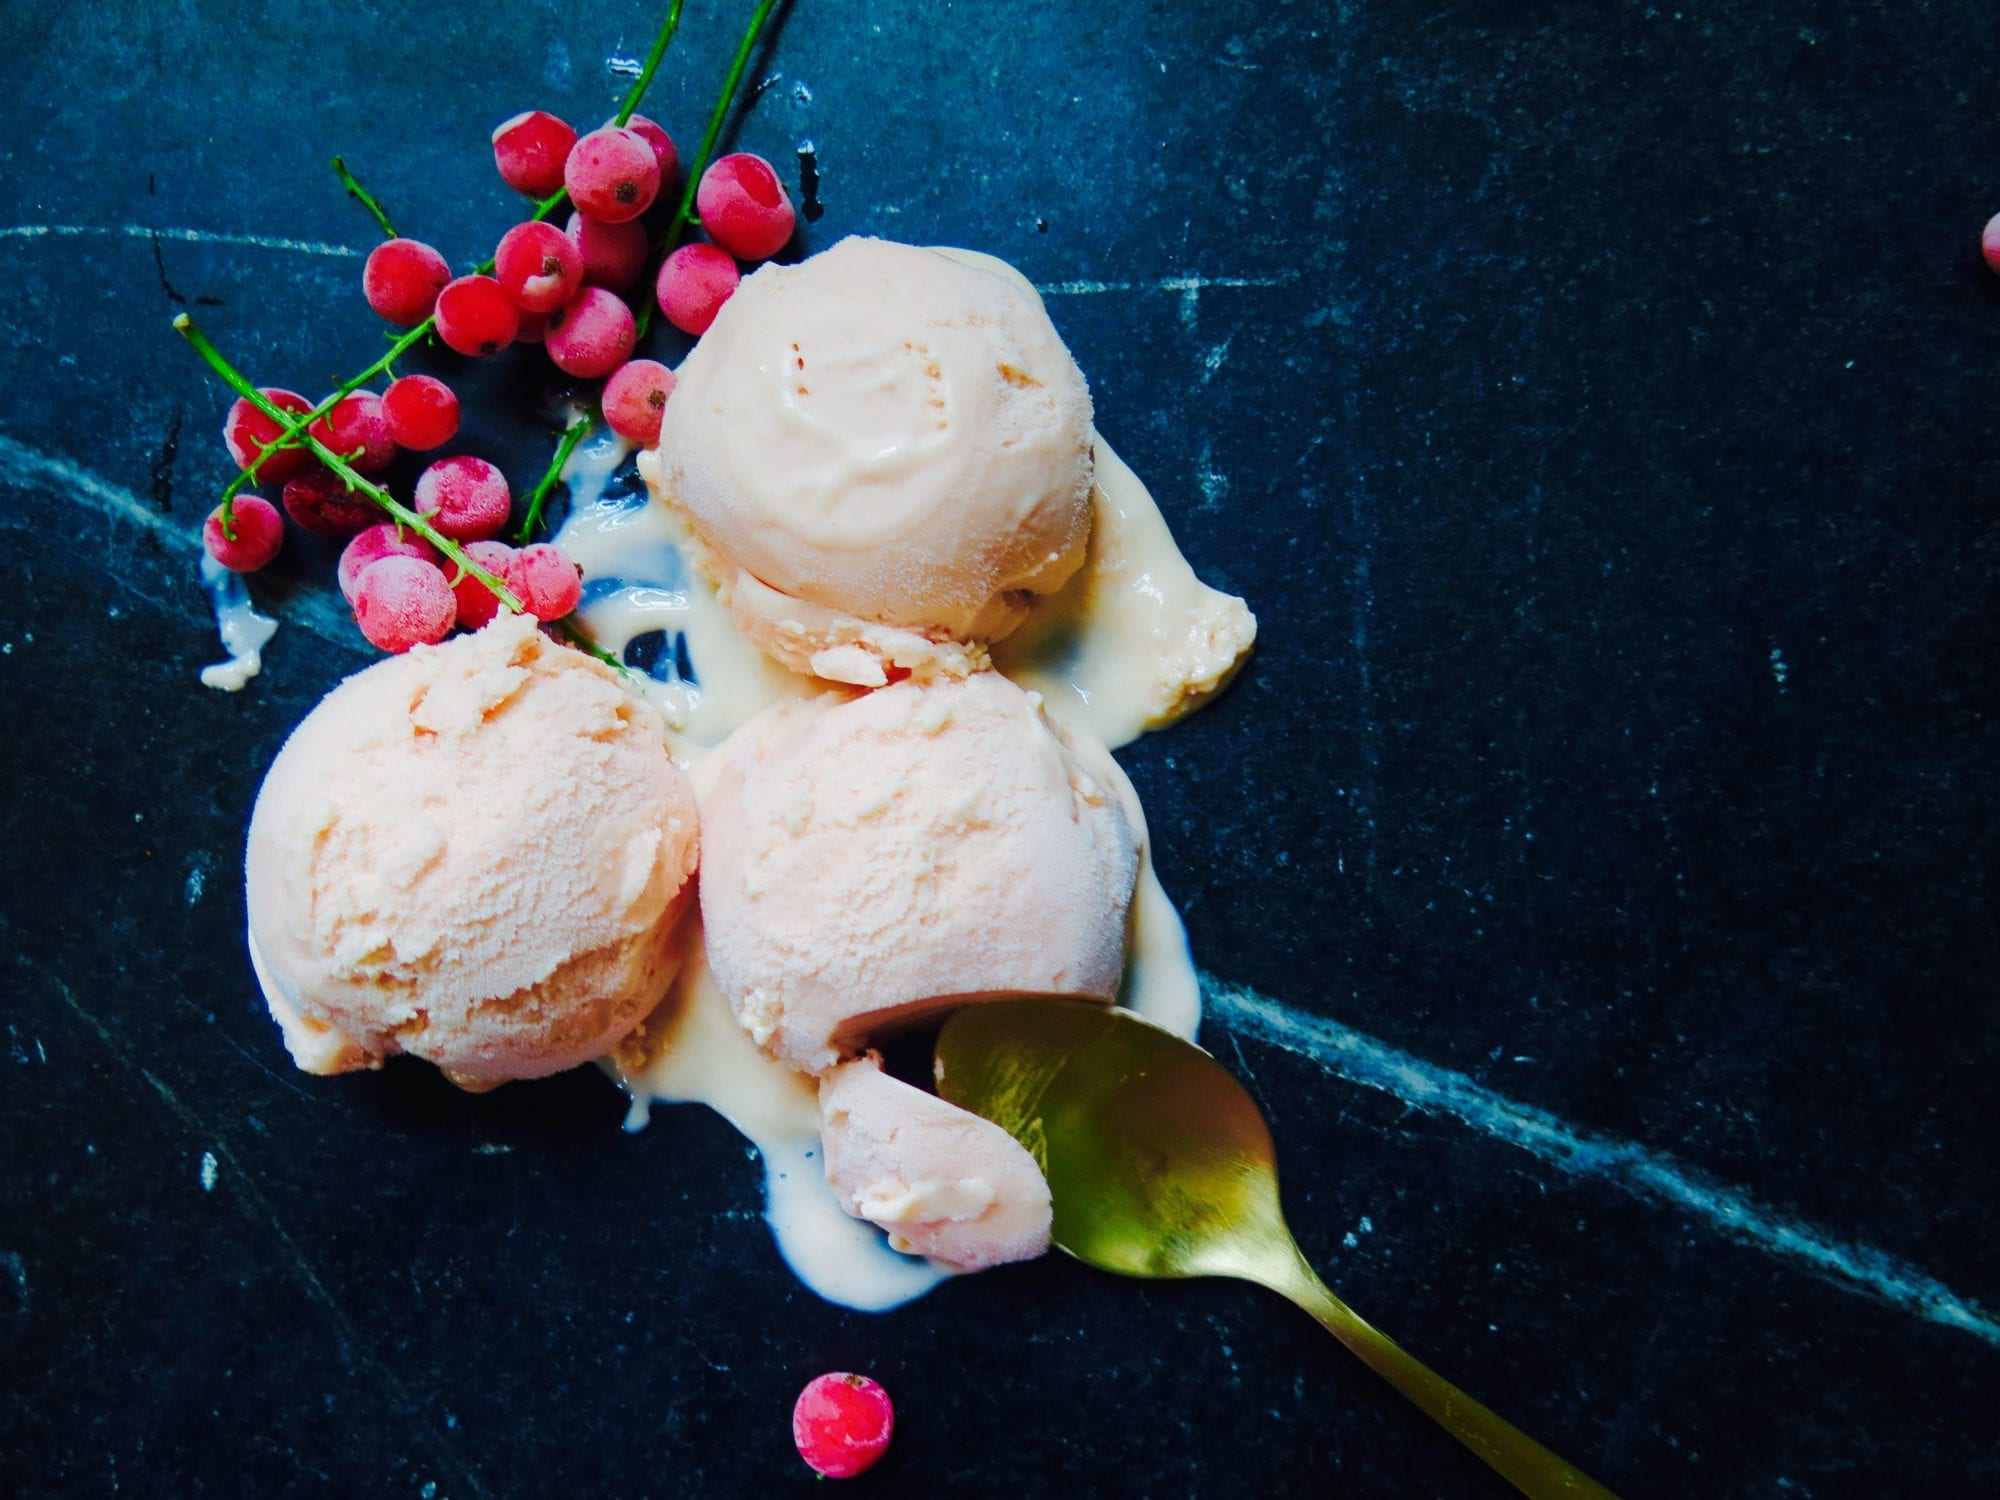 Red Currant Ice Cream Recipe | Jessie Sheehan Bakes